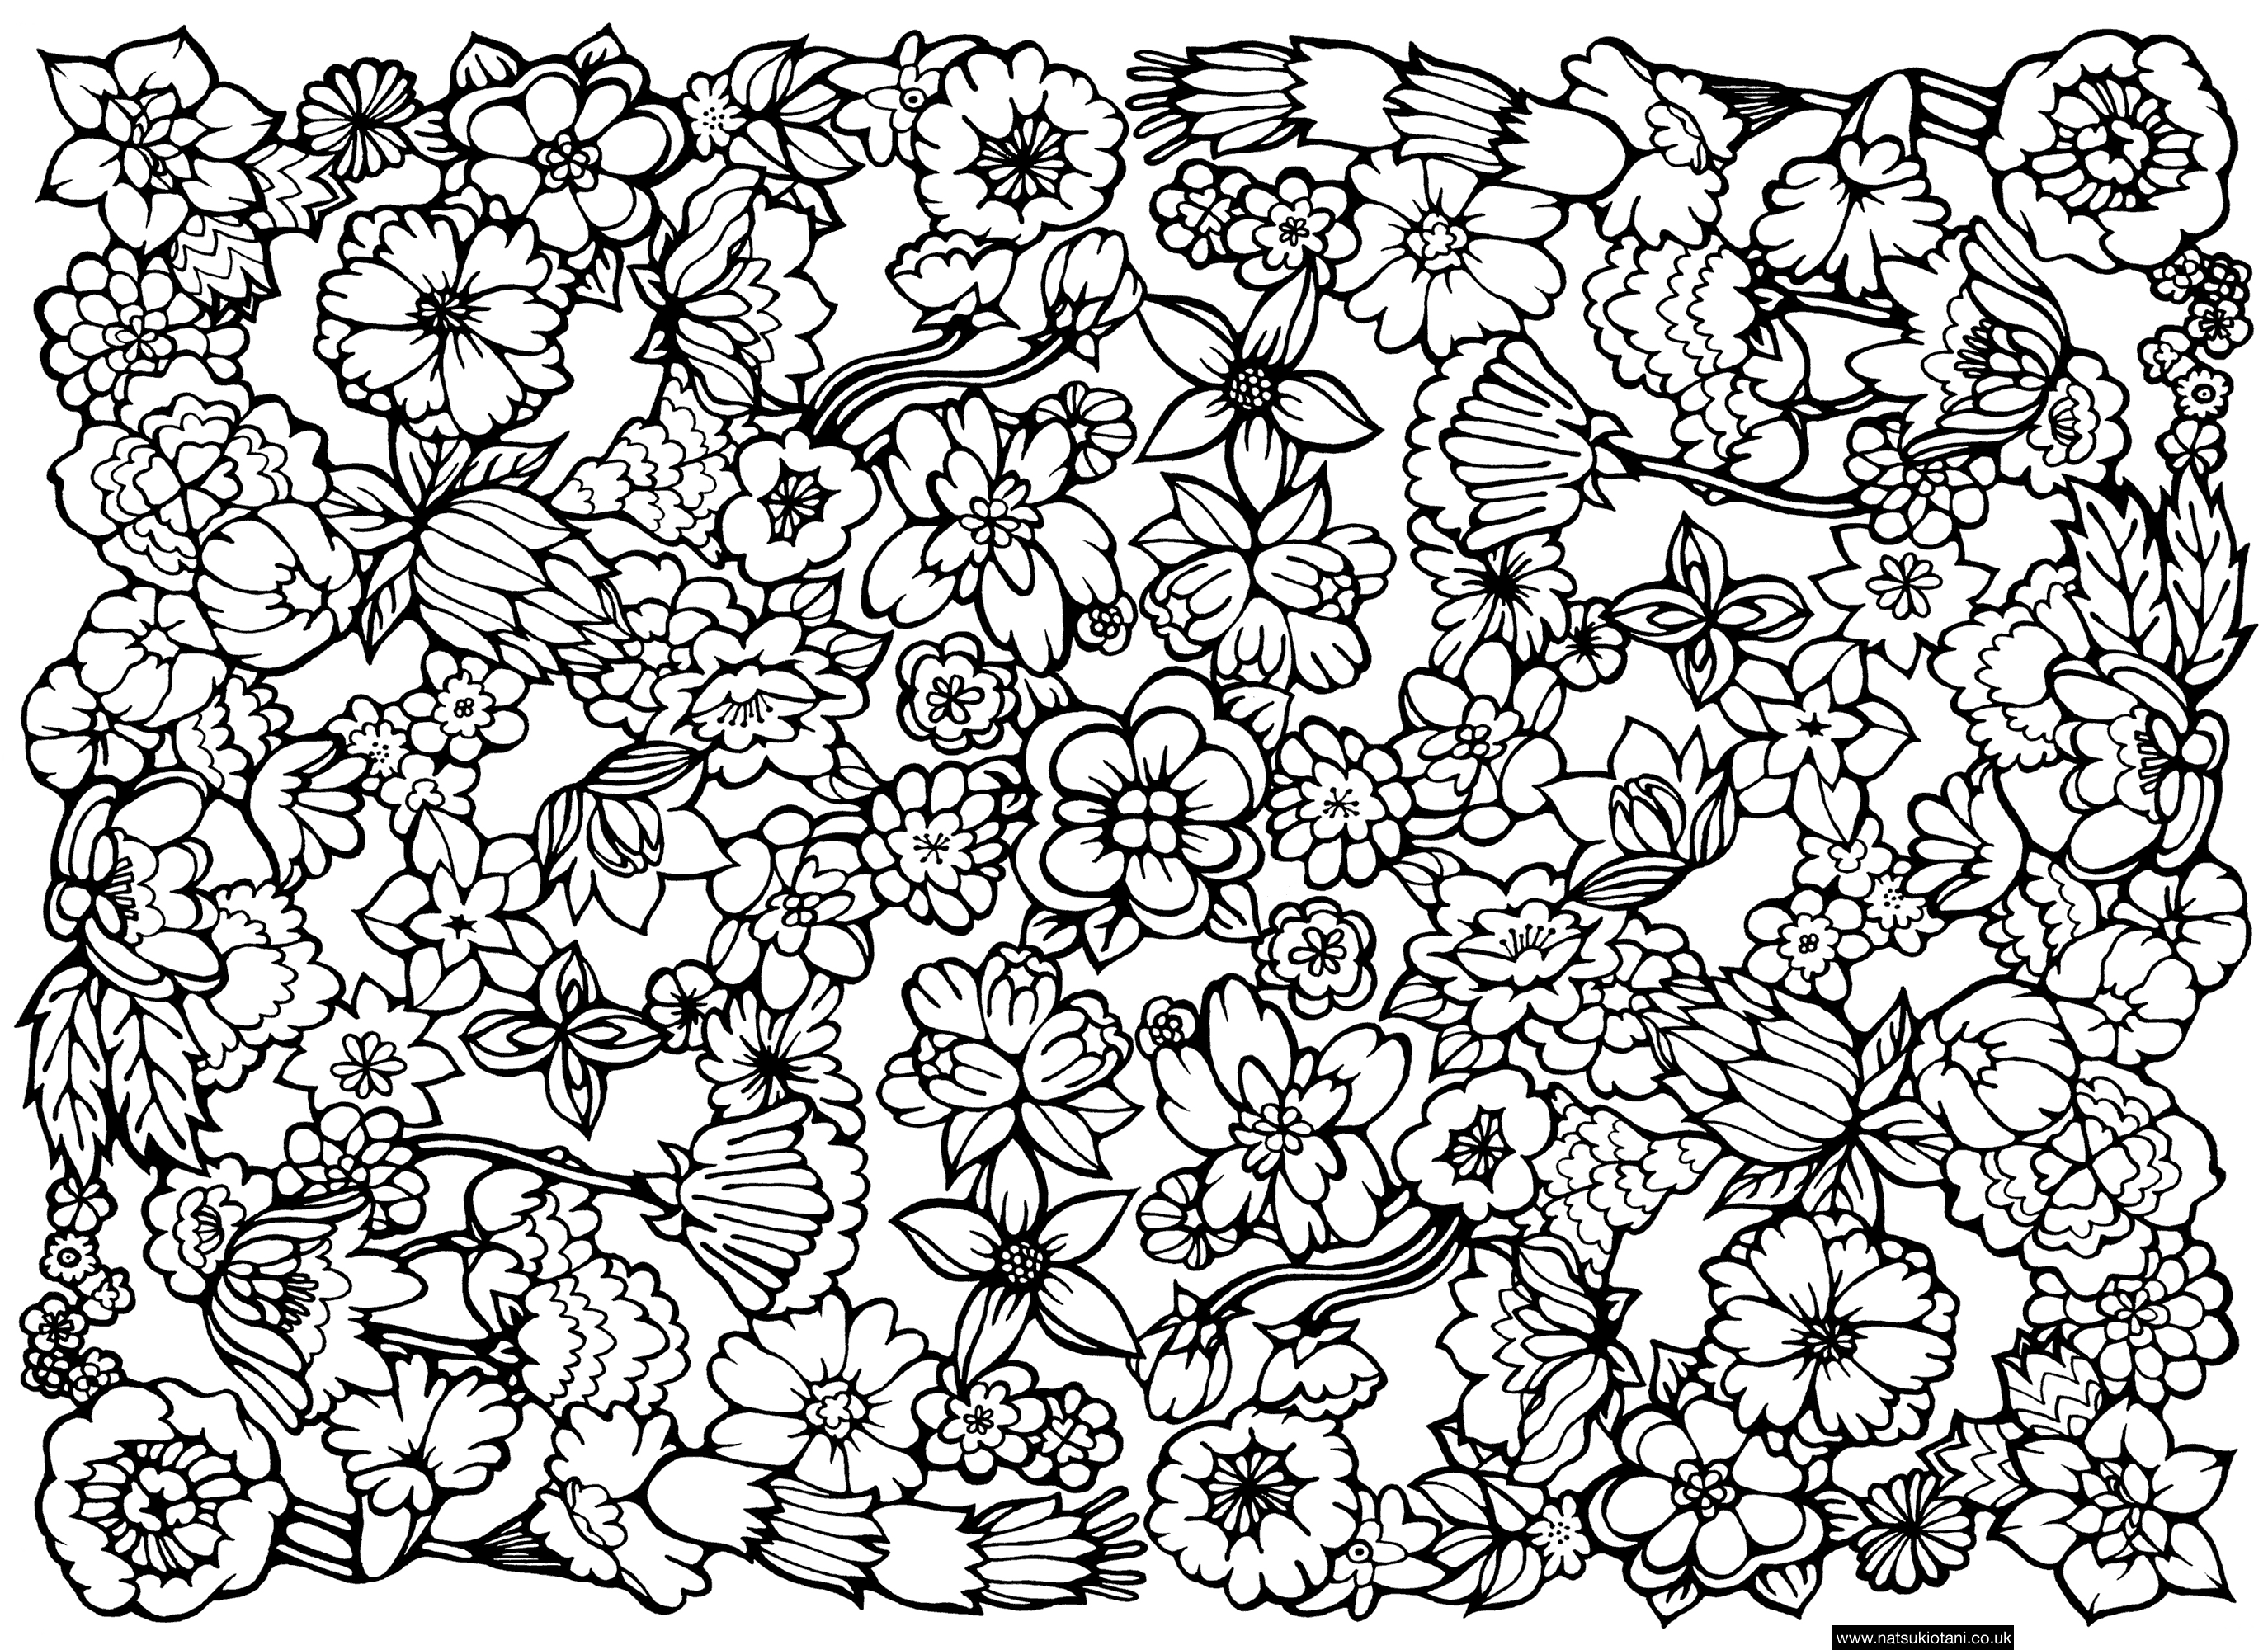 Free Adult Coloring Pages Mandalas And More 14443 ...